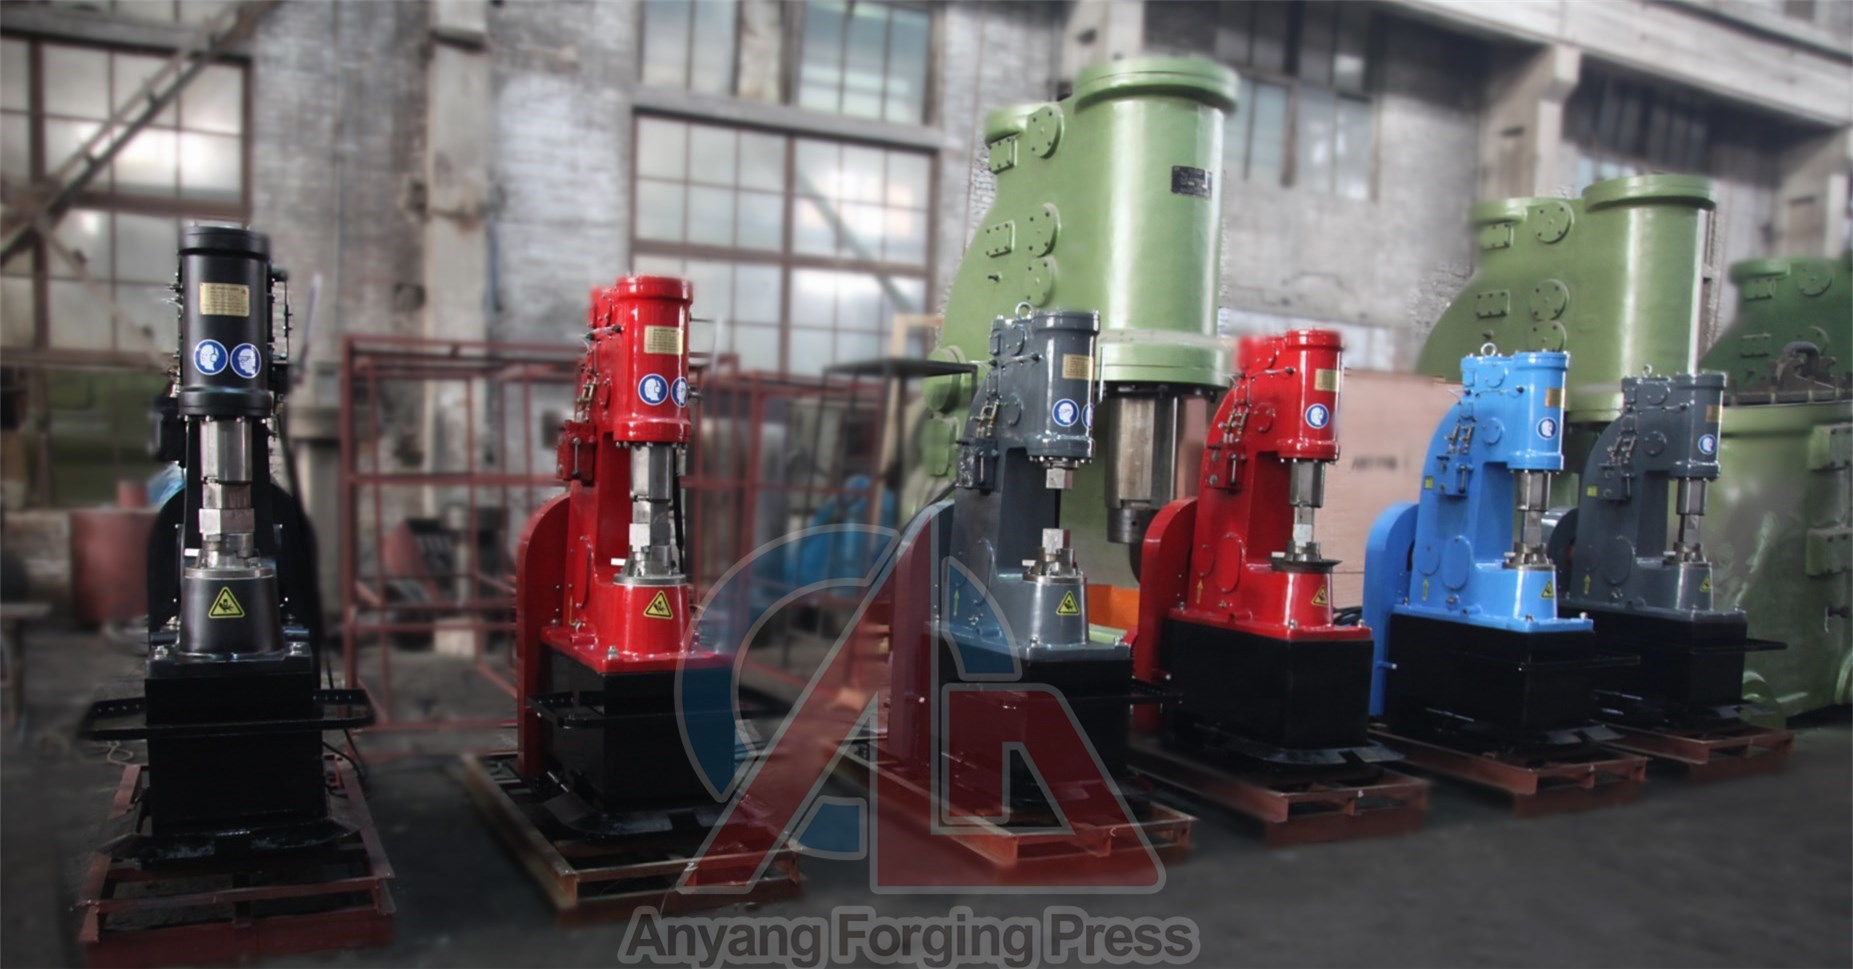 anyang blacksmith power hammer